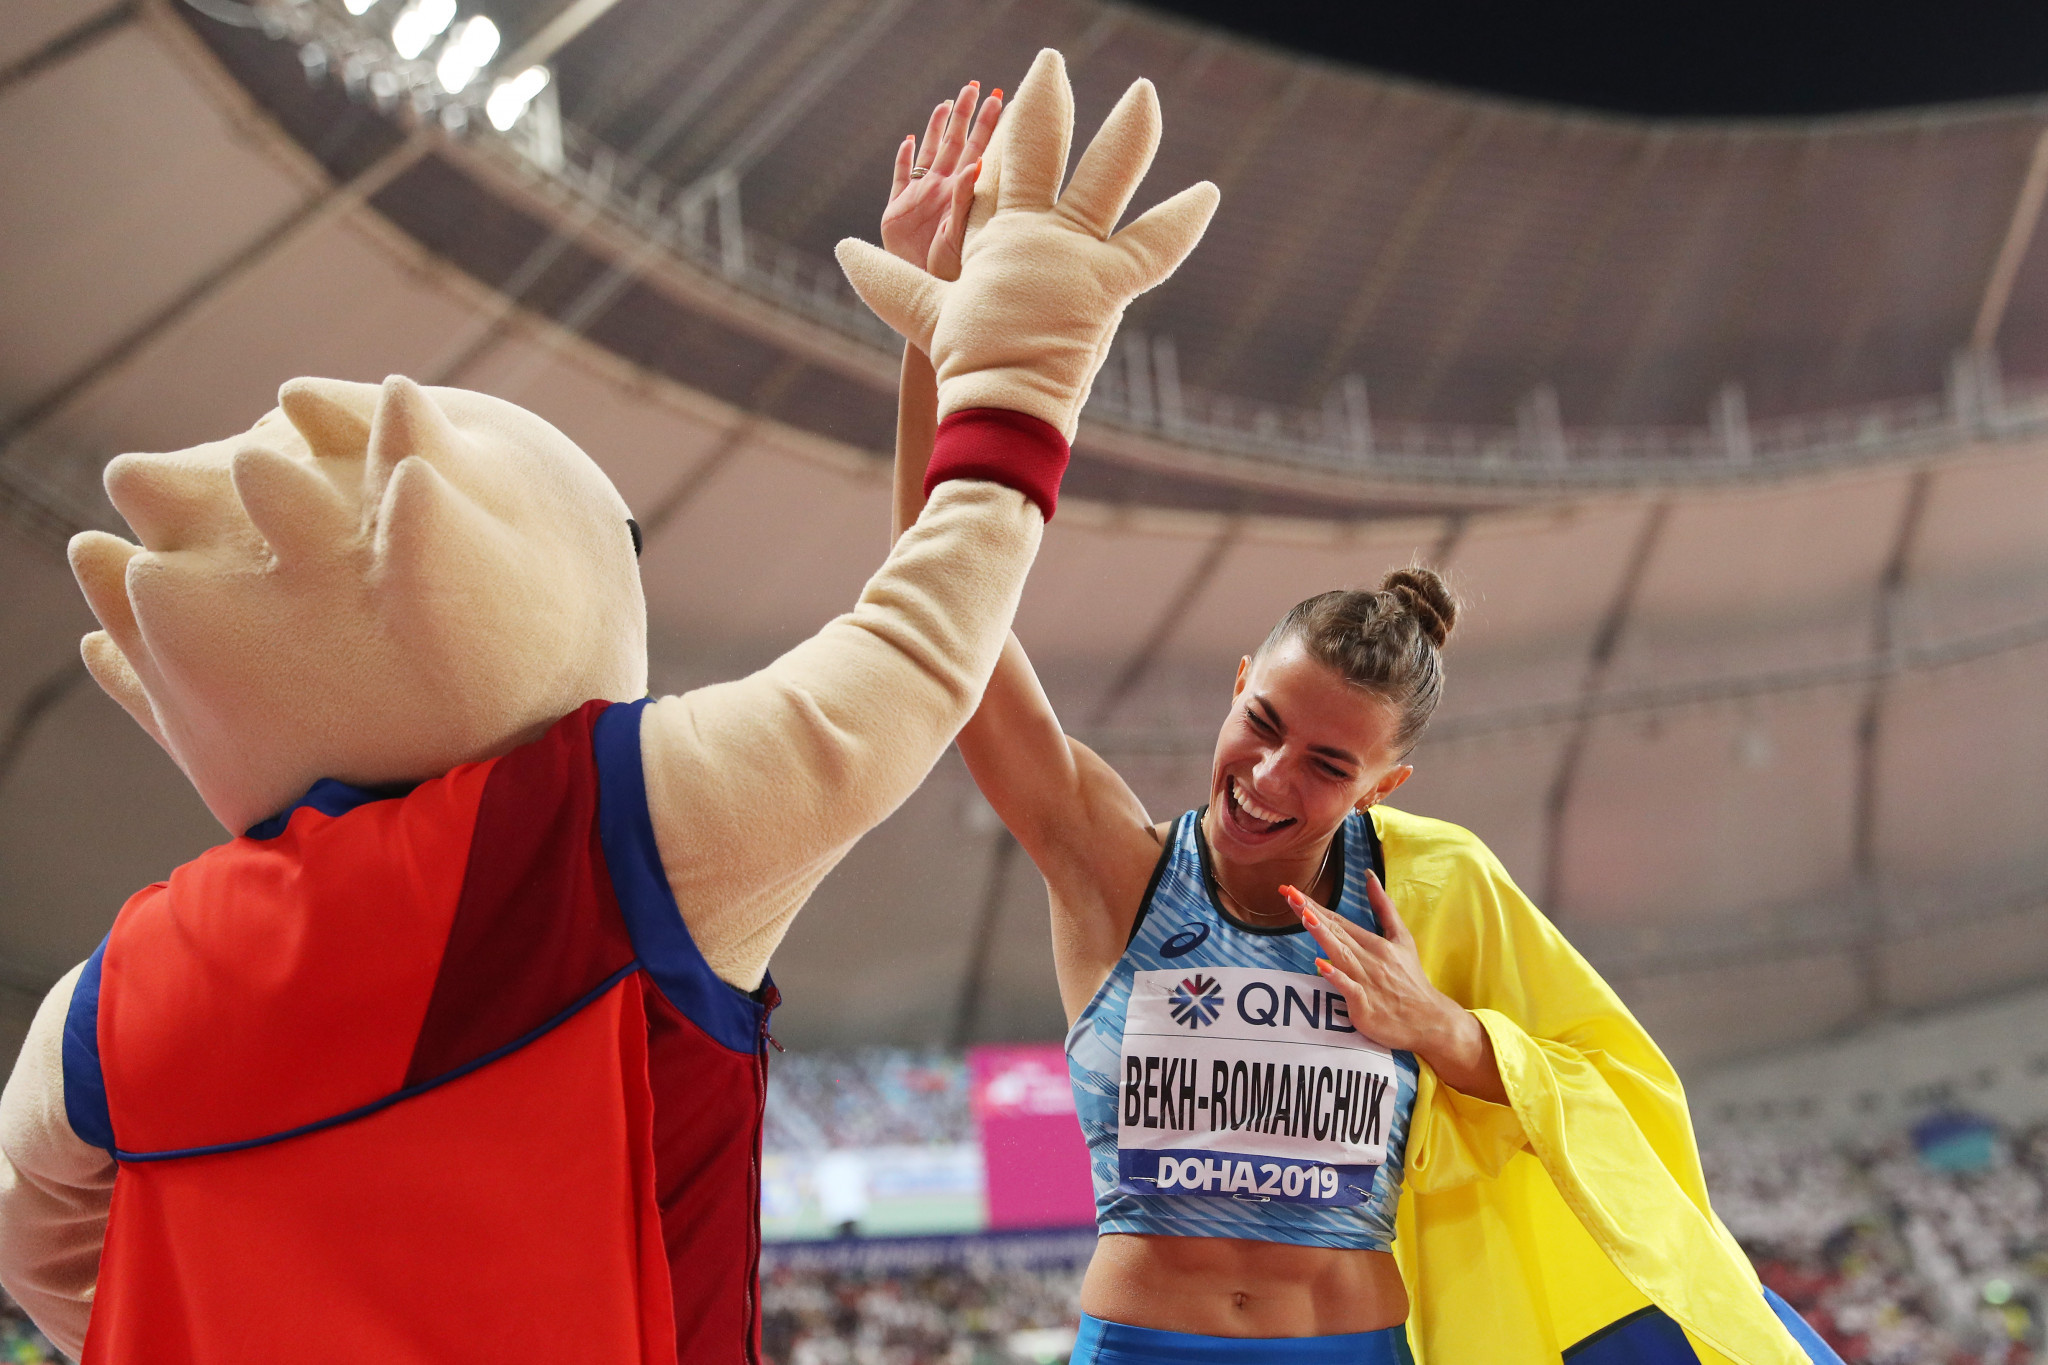 Maryna Bekh-Romanchuk of Ukraine celebrates her silver medal in the women's long jump with a fan